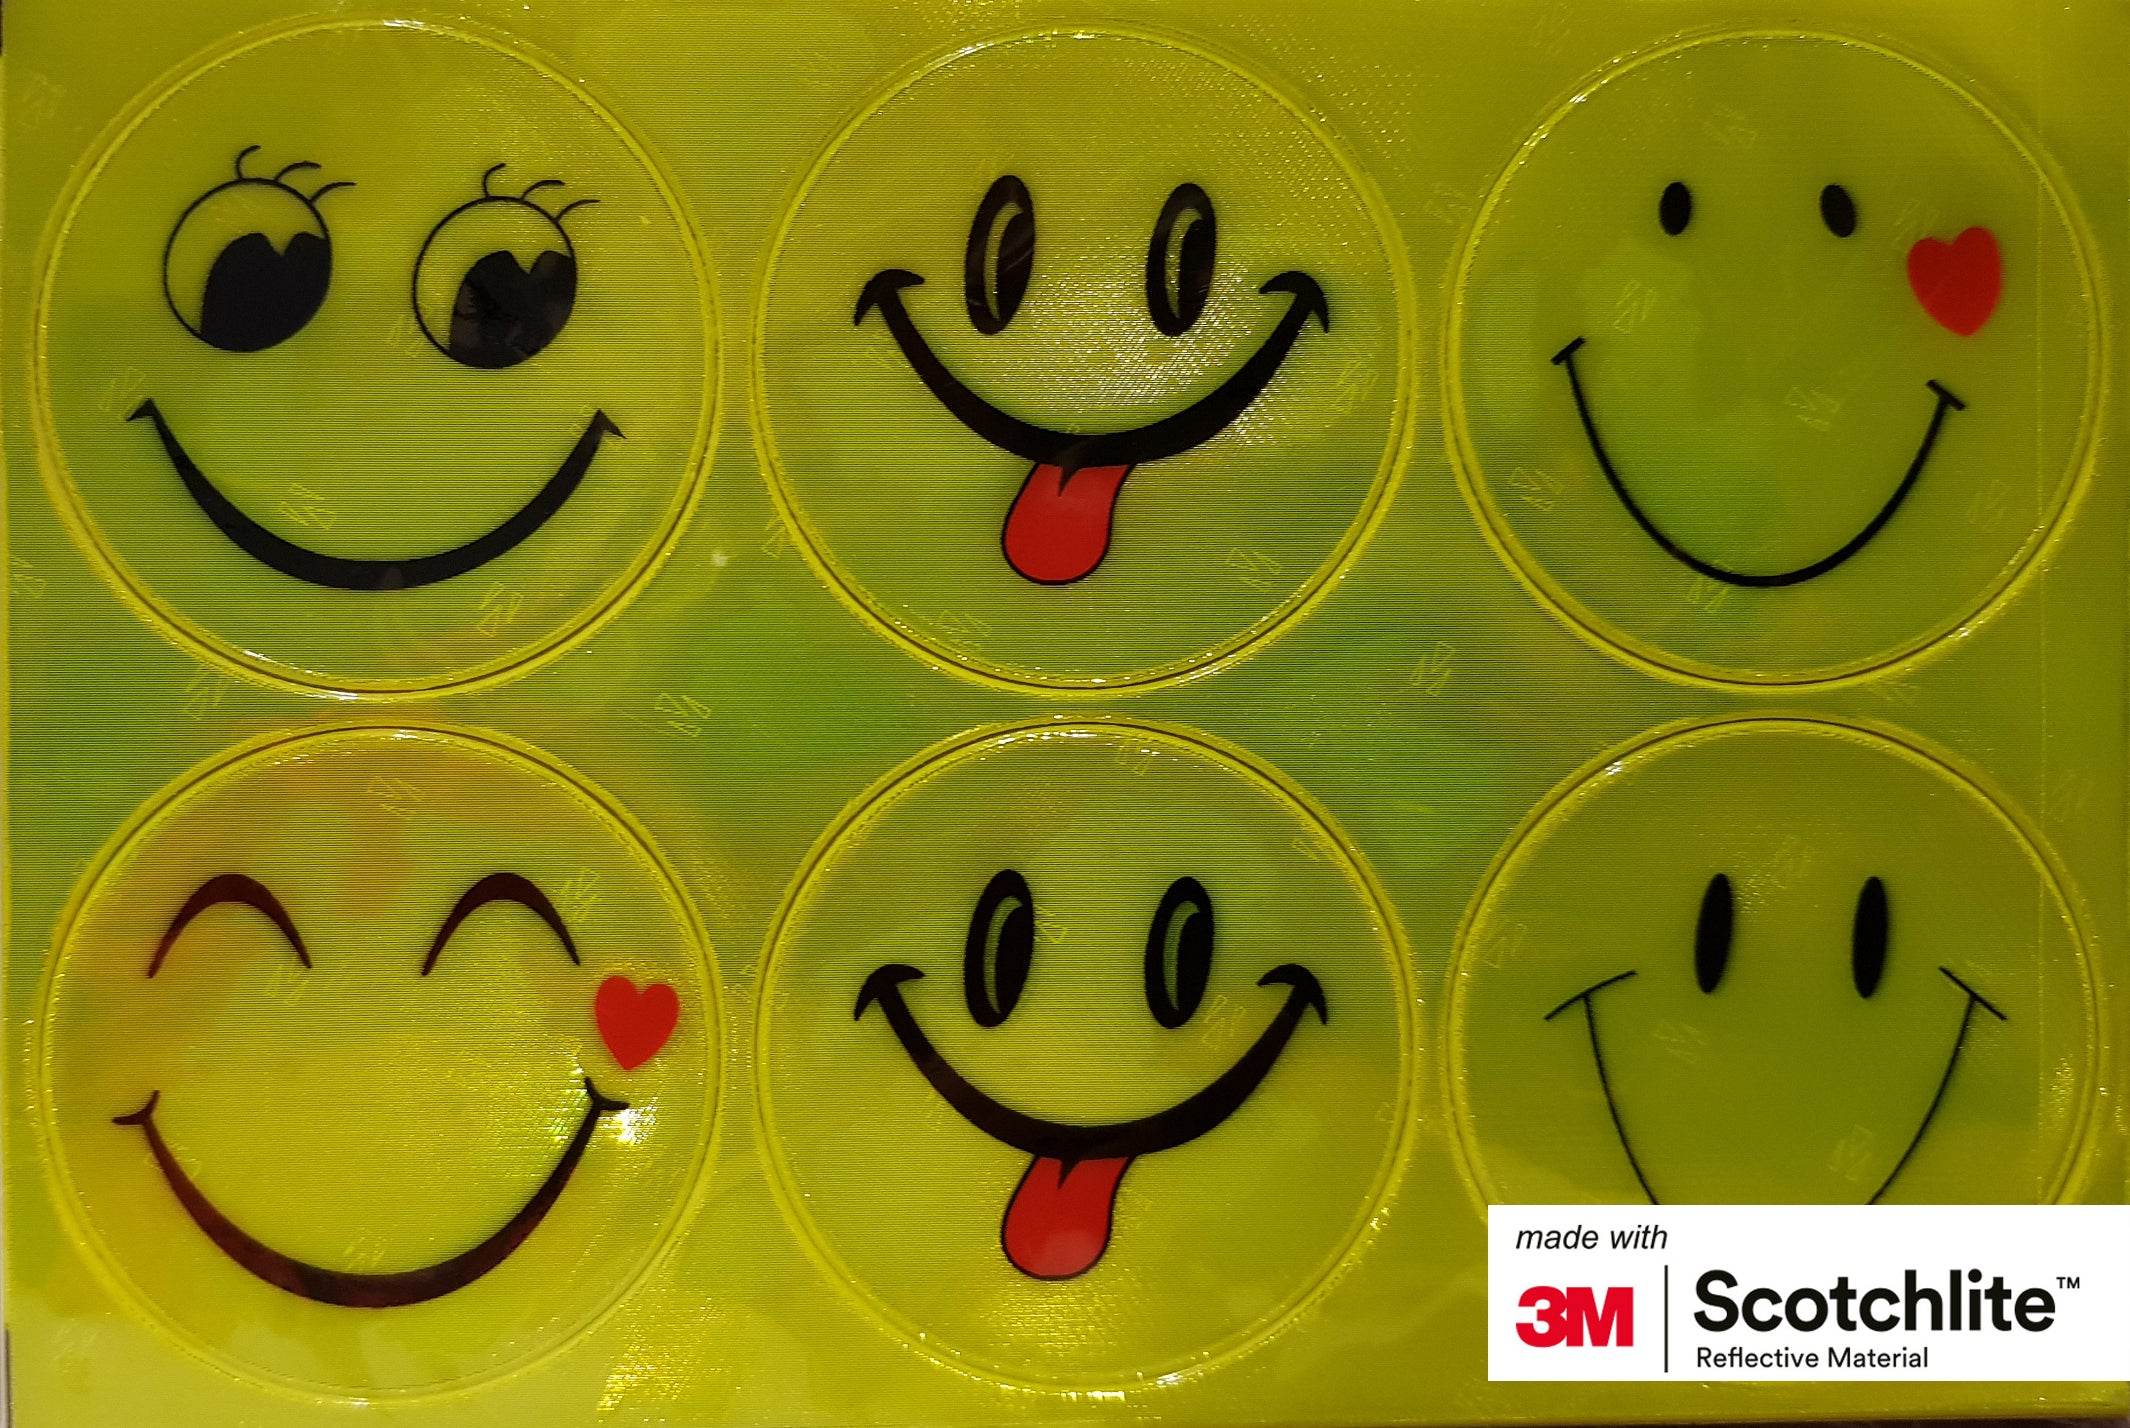 Salzmann 3M Scotchlite Reflective Stickers Smiley Faces